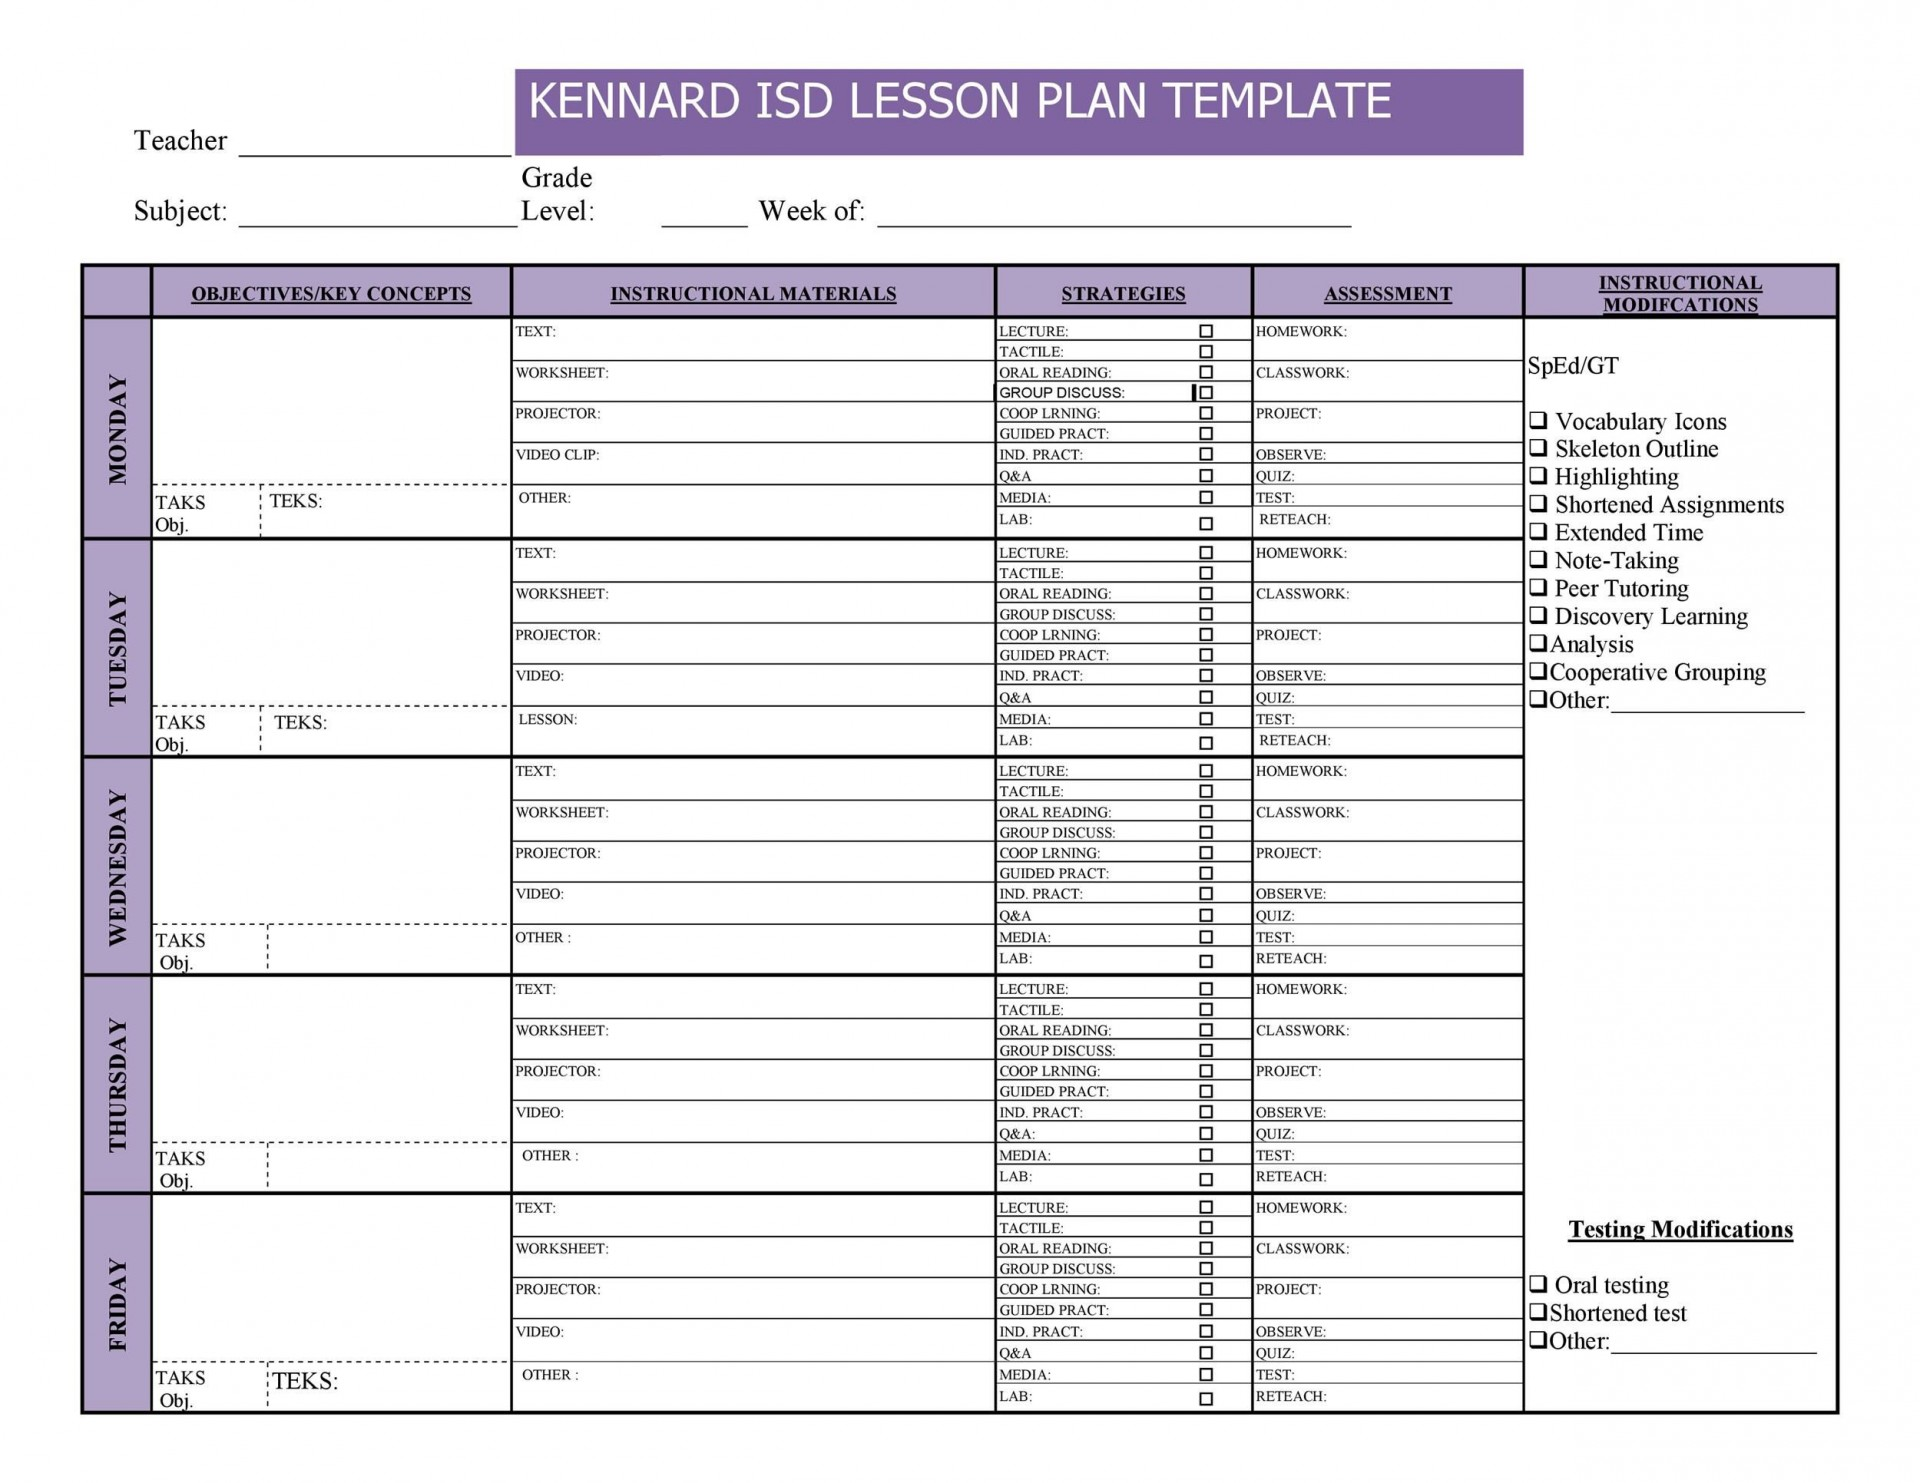 007 Excellent Downloadable Lesson Plan Template Image  Printable Weekly Pdf Free Word1920